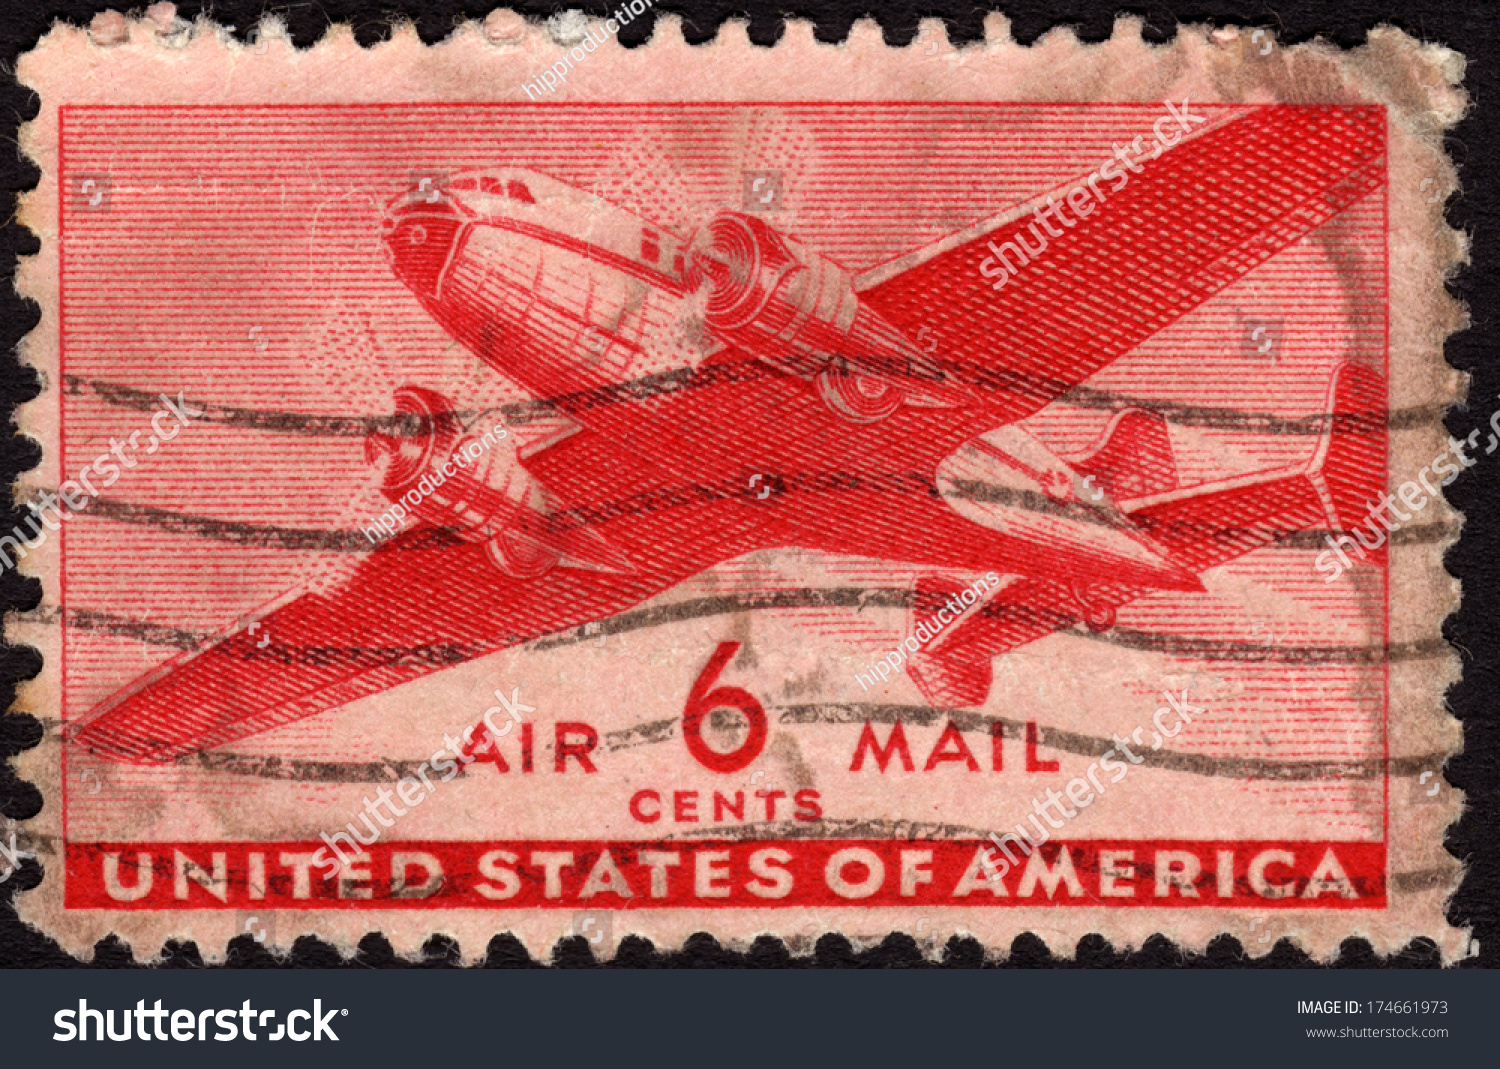 United States Postage Stamp In The Value